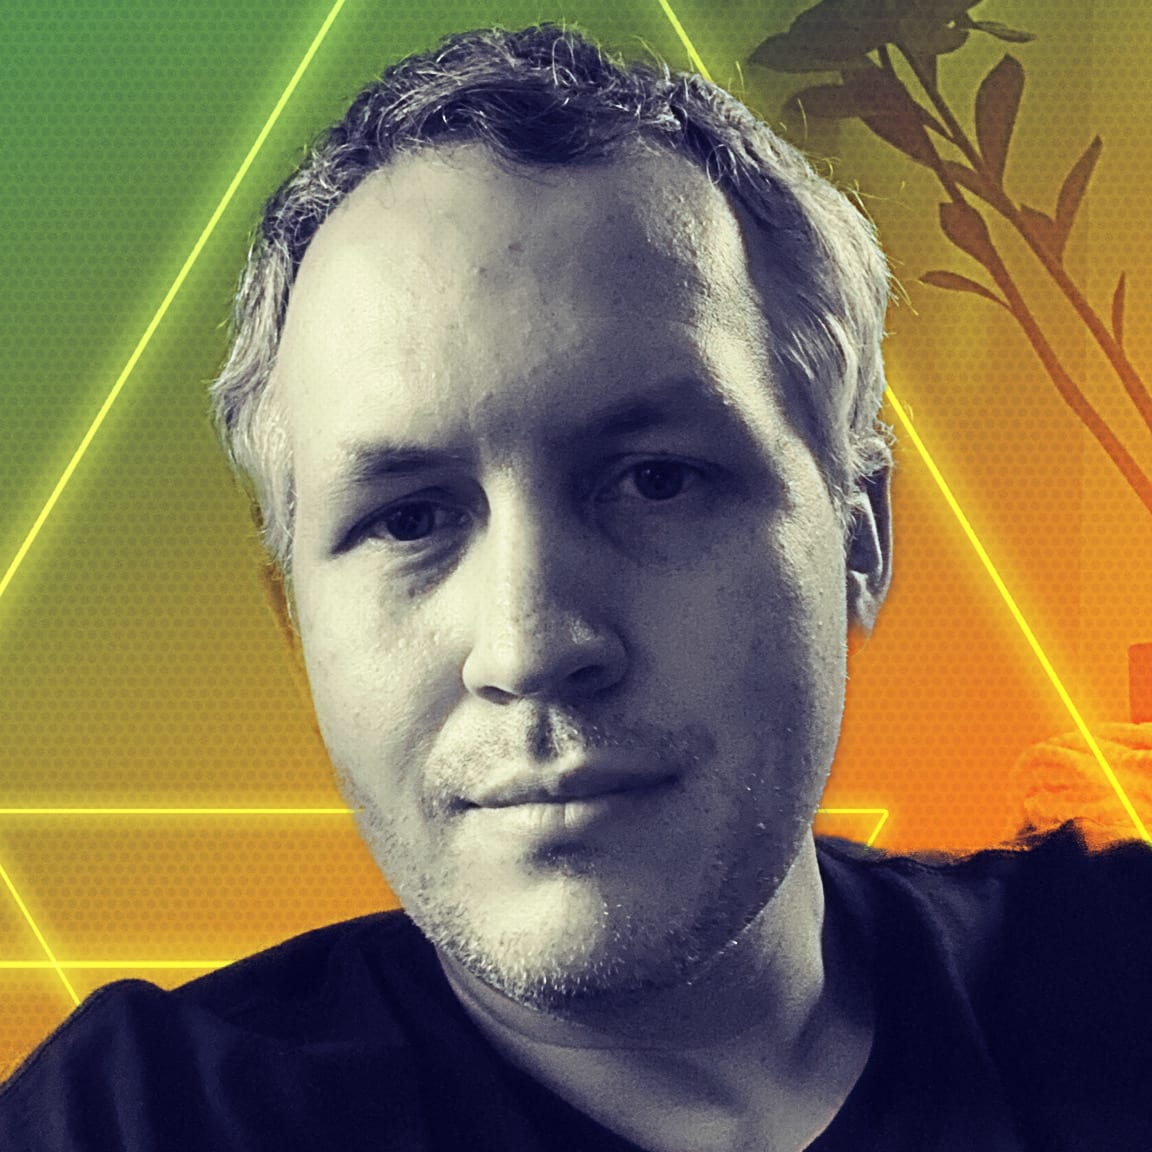 Photo of David Demaree with colorful background